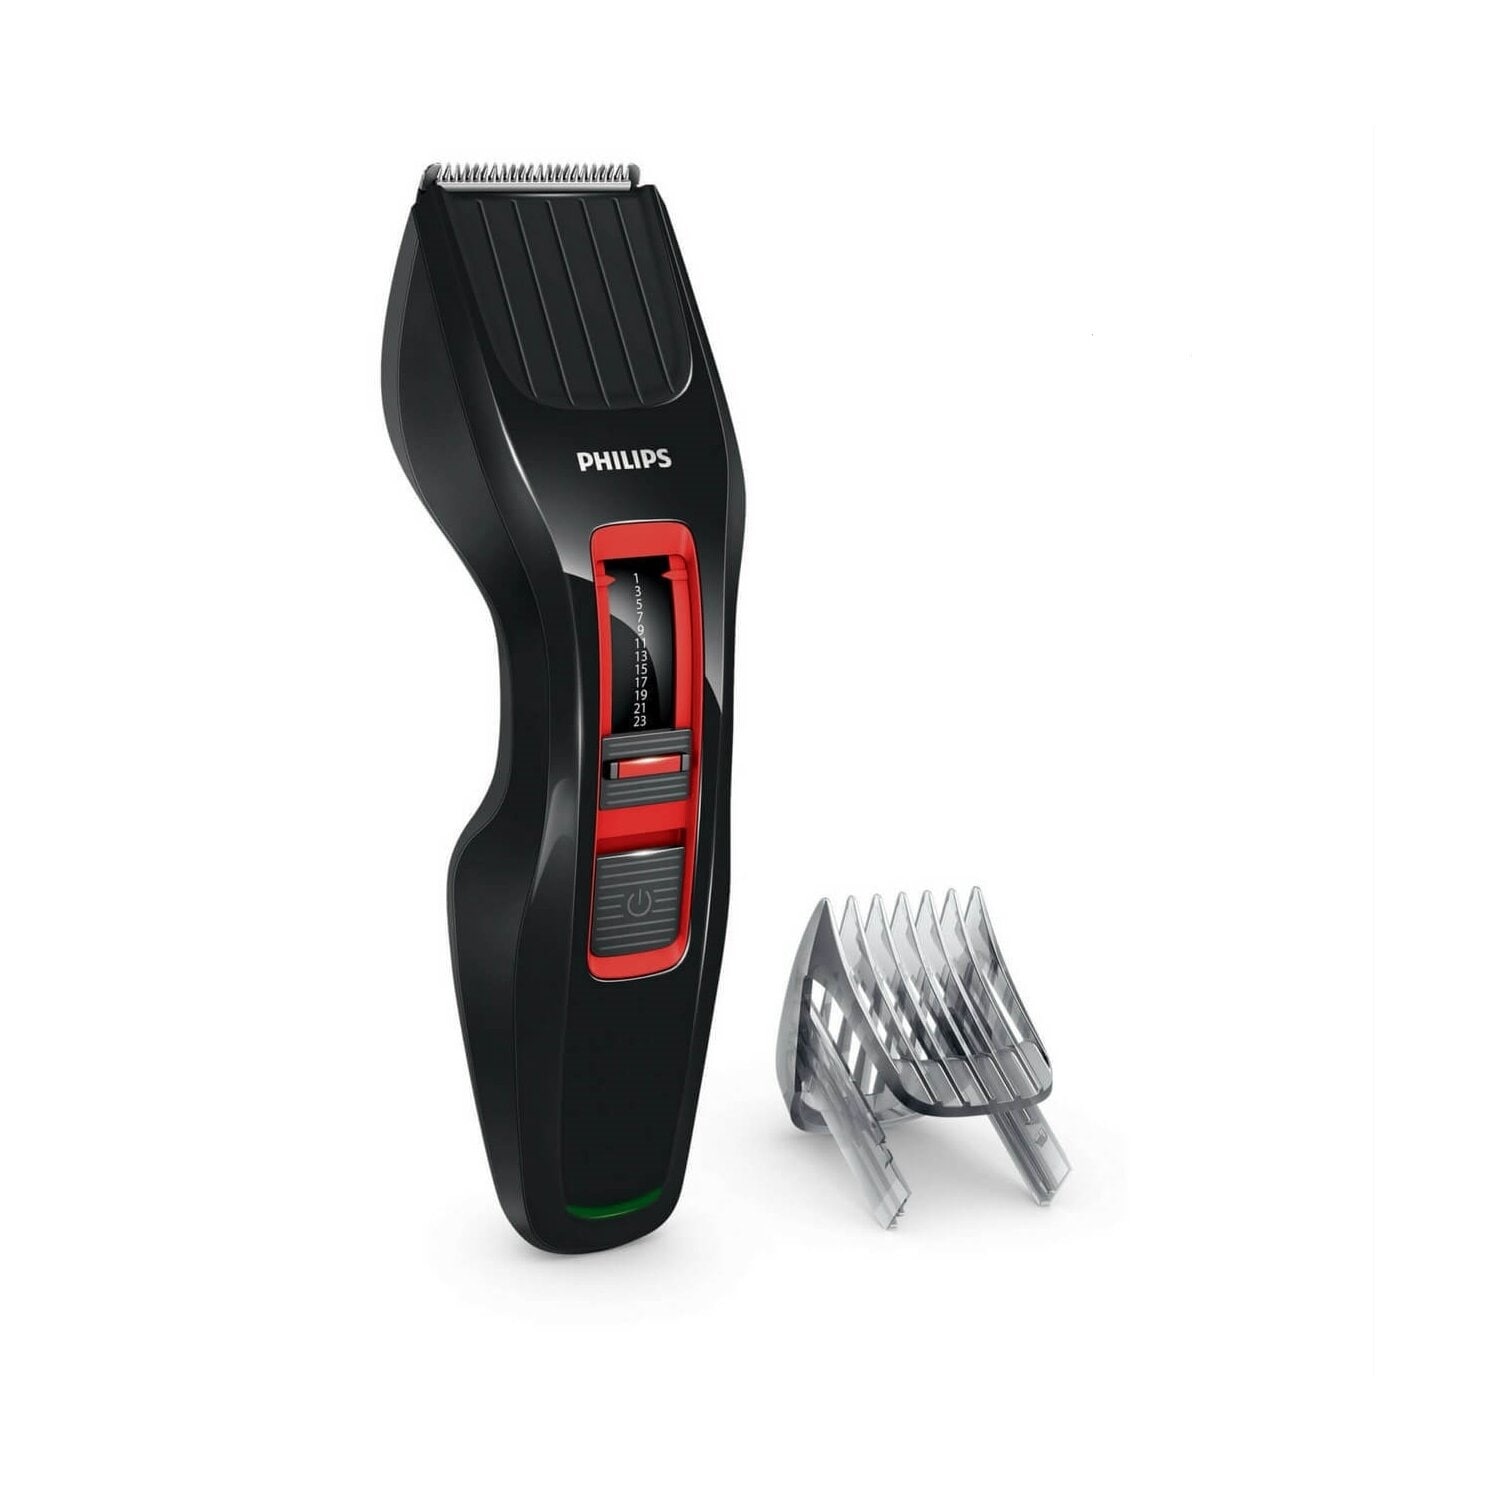 Strzyżarka PHILIPS Hairclipper Series 3000 HC3420/15